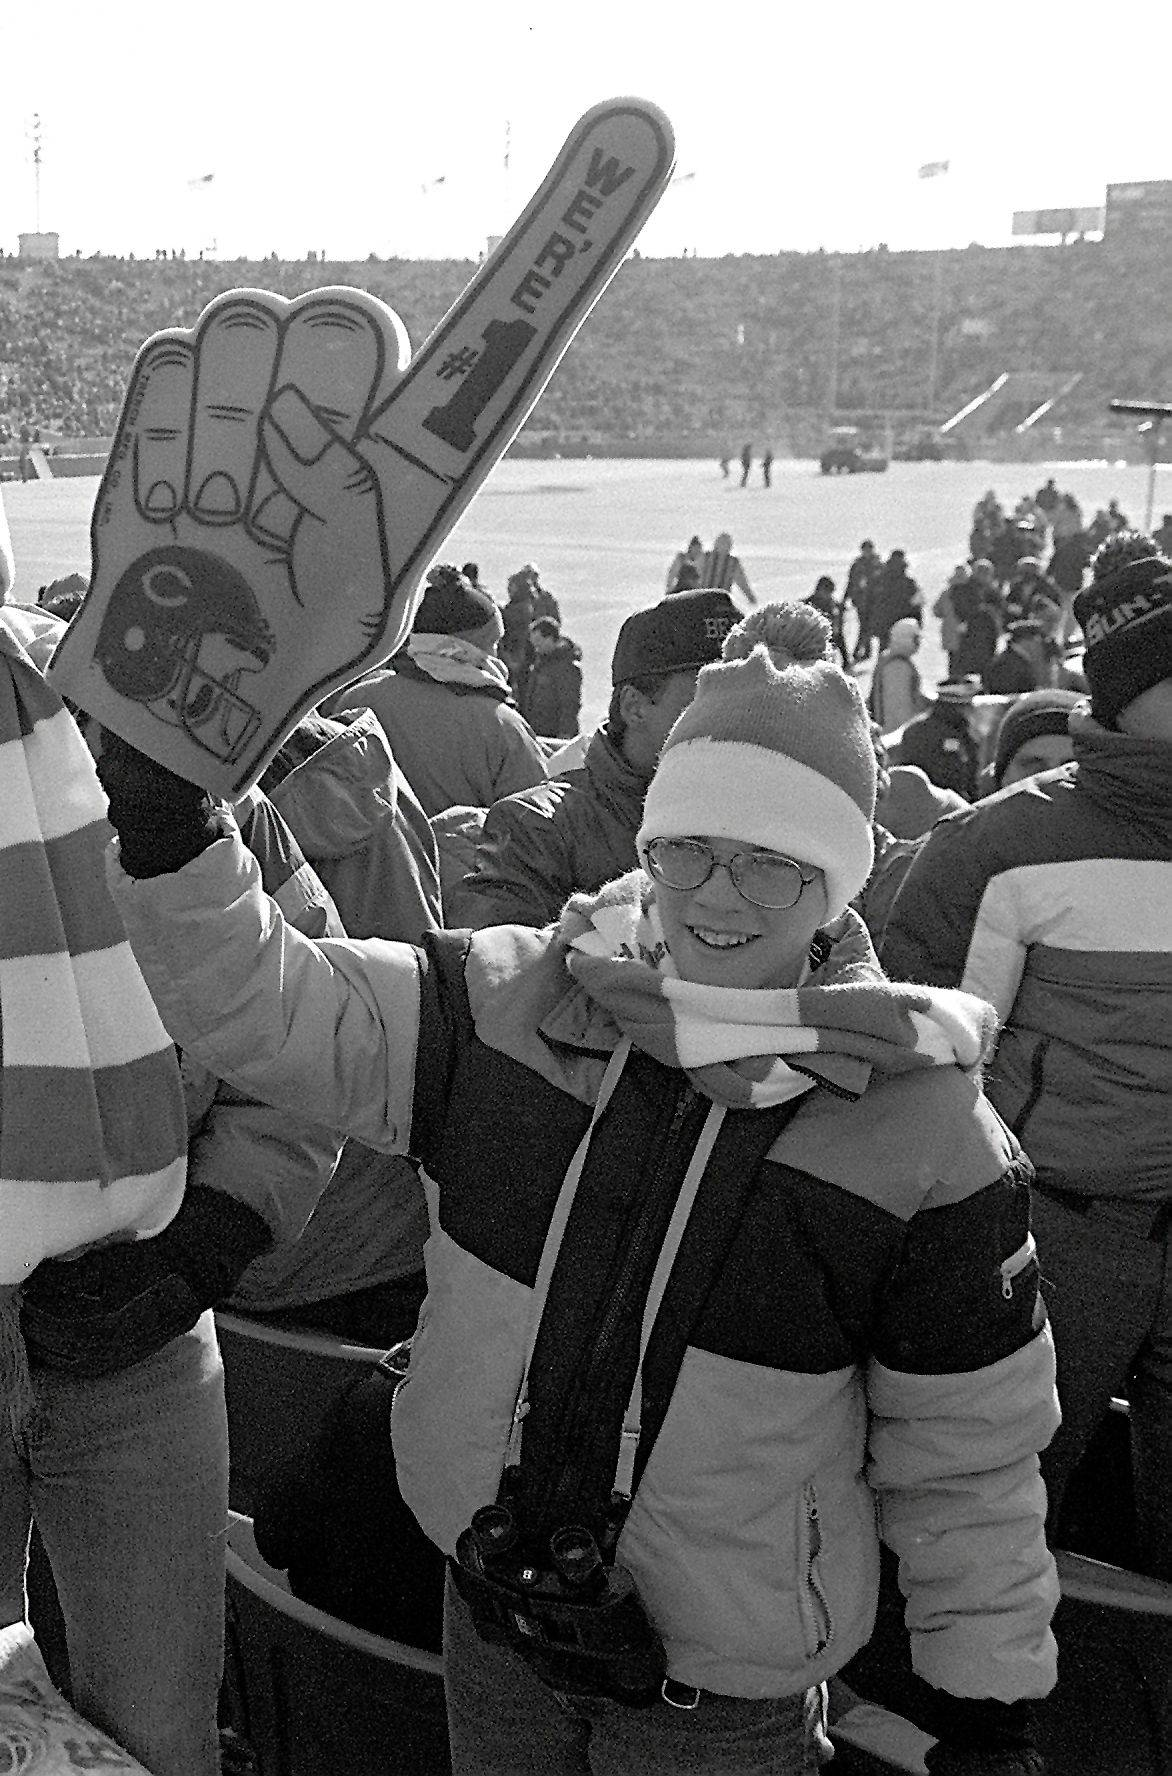 Cheering the Bears to a 21-0 playoff victory on a frigid day 25 years ago at Soldier Field, 12-year-old Brady Smith, far right, of Barrington dreamed of playing in the NFL. Not only did he grow up to play for more than a decade, but Smith recorded a playoff safety as a defensive end with the Falcons, near right.